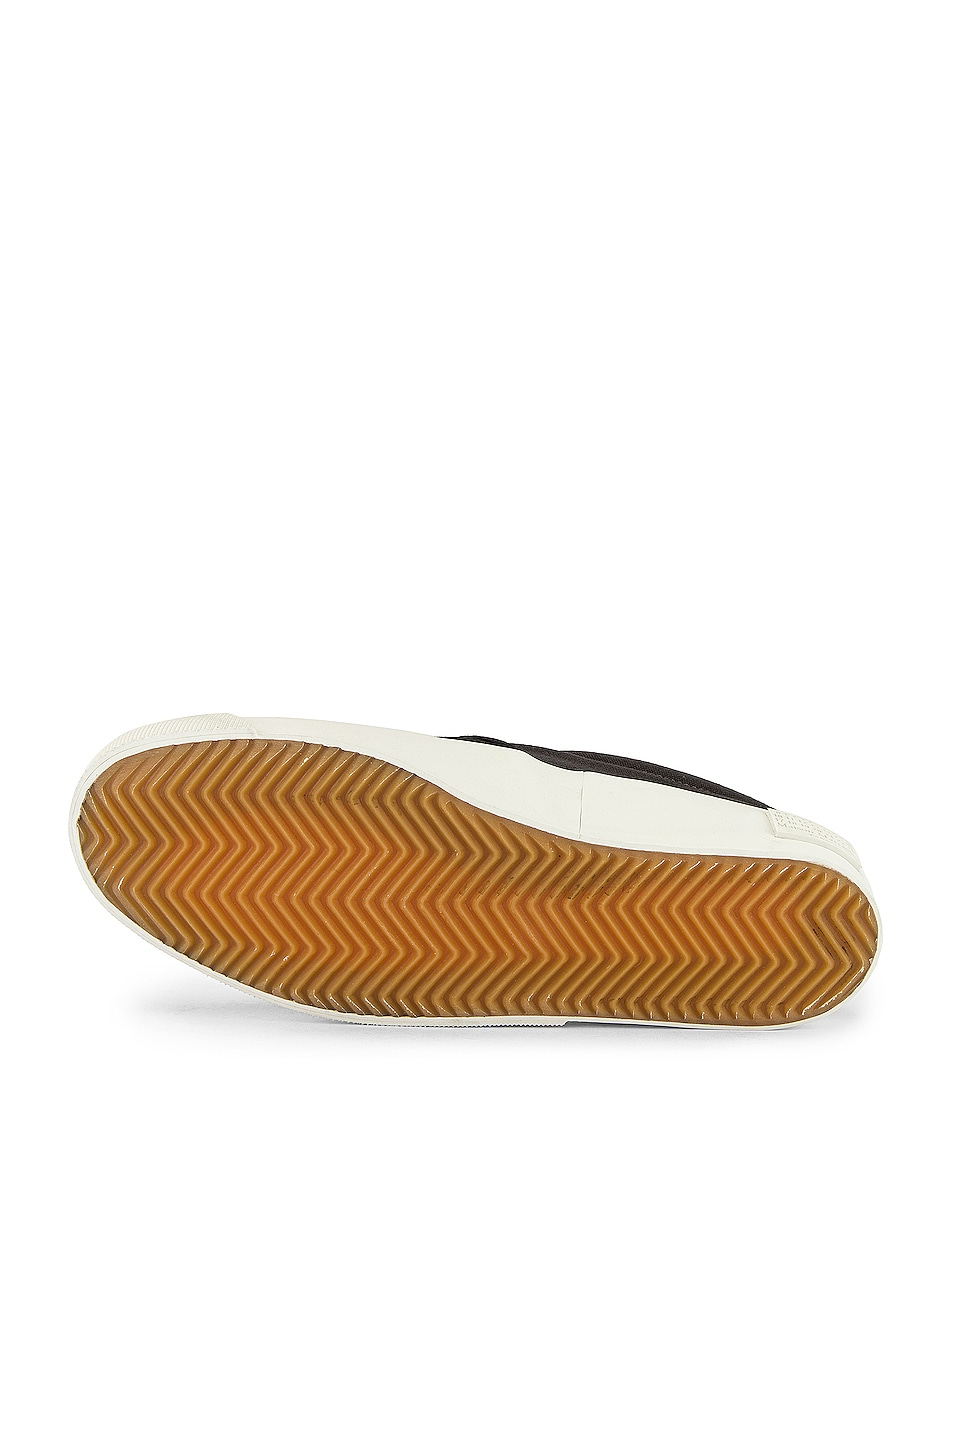 Image 6 of Maison Margiela Hurricane Slip On in Smoke 91 & Neroy